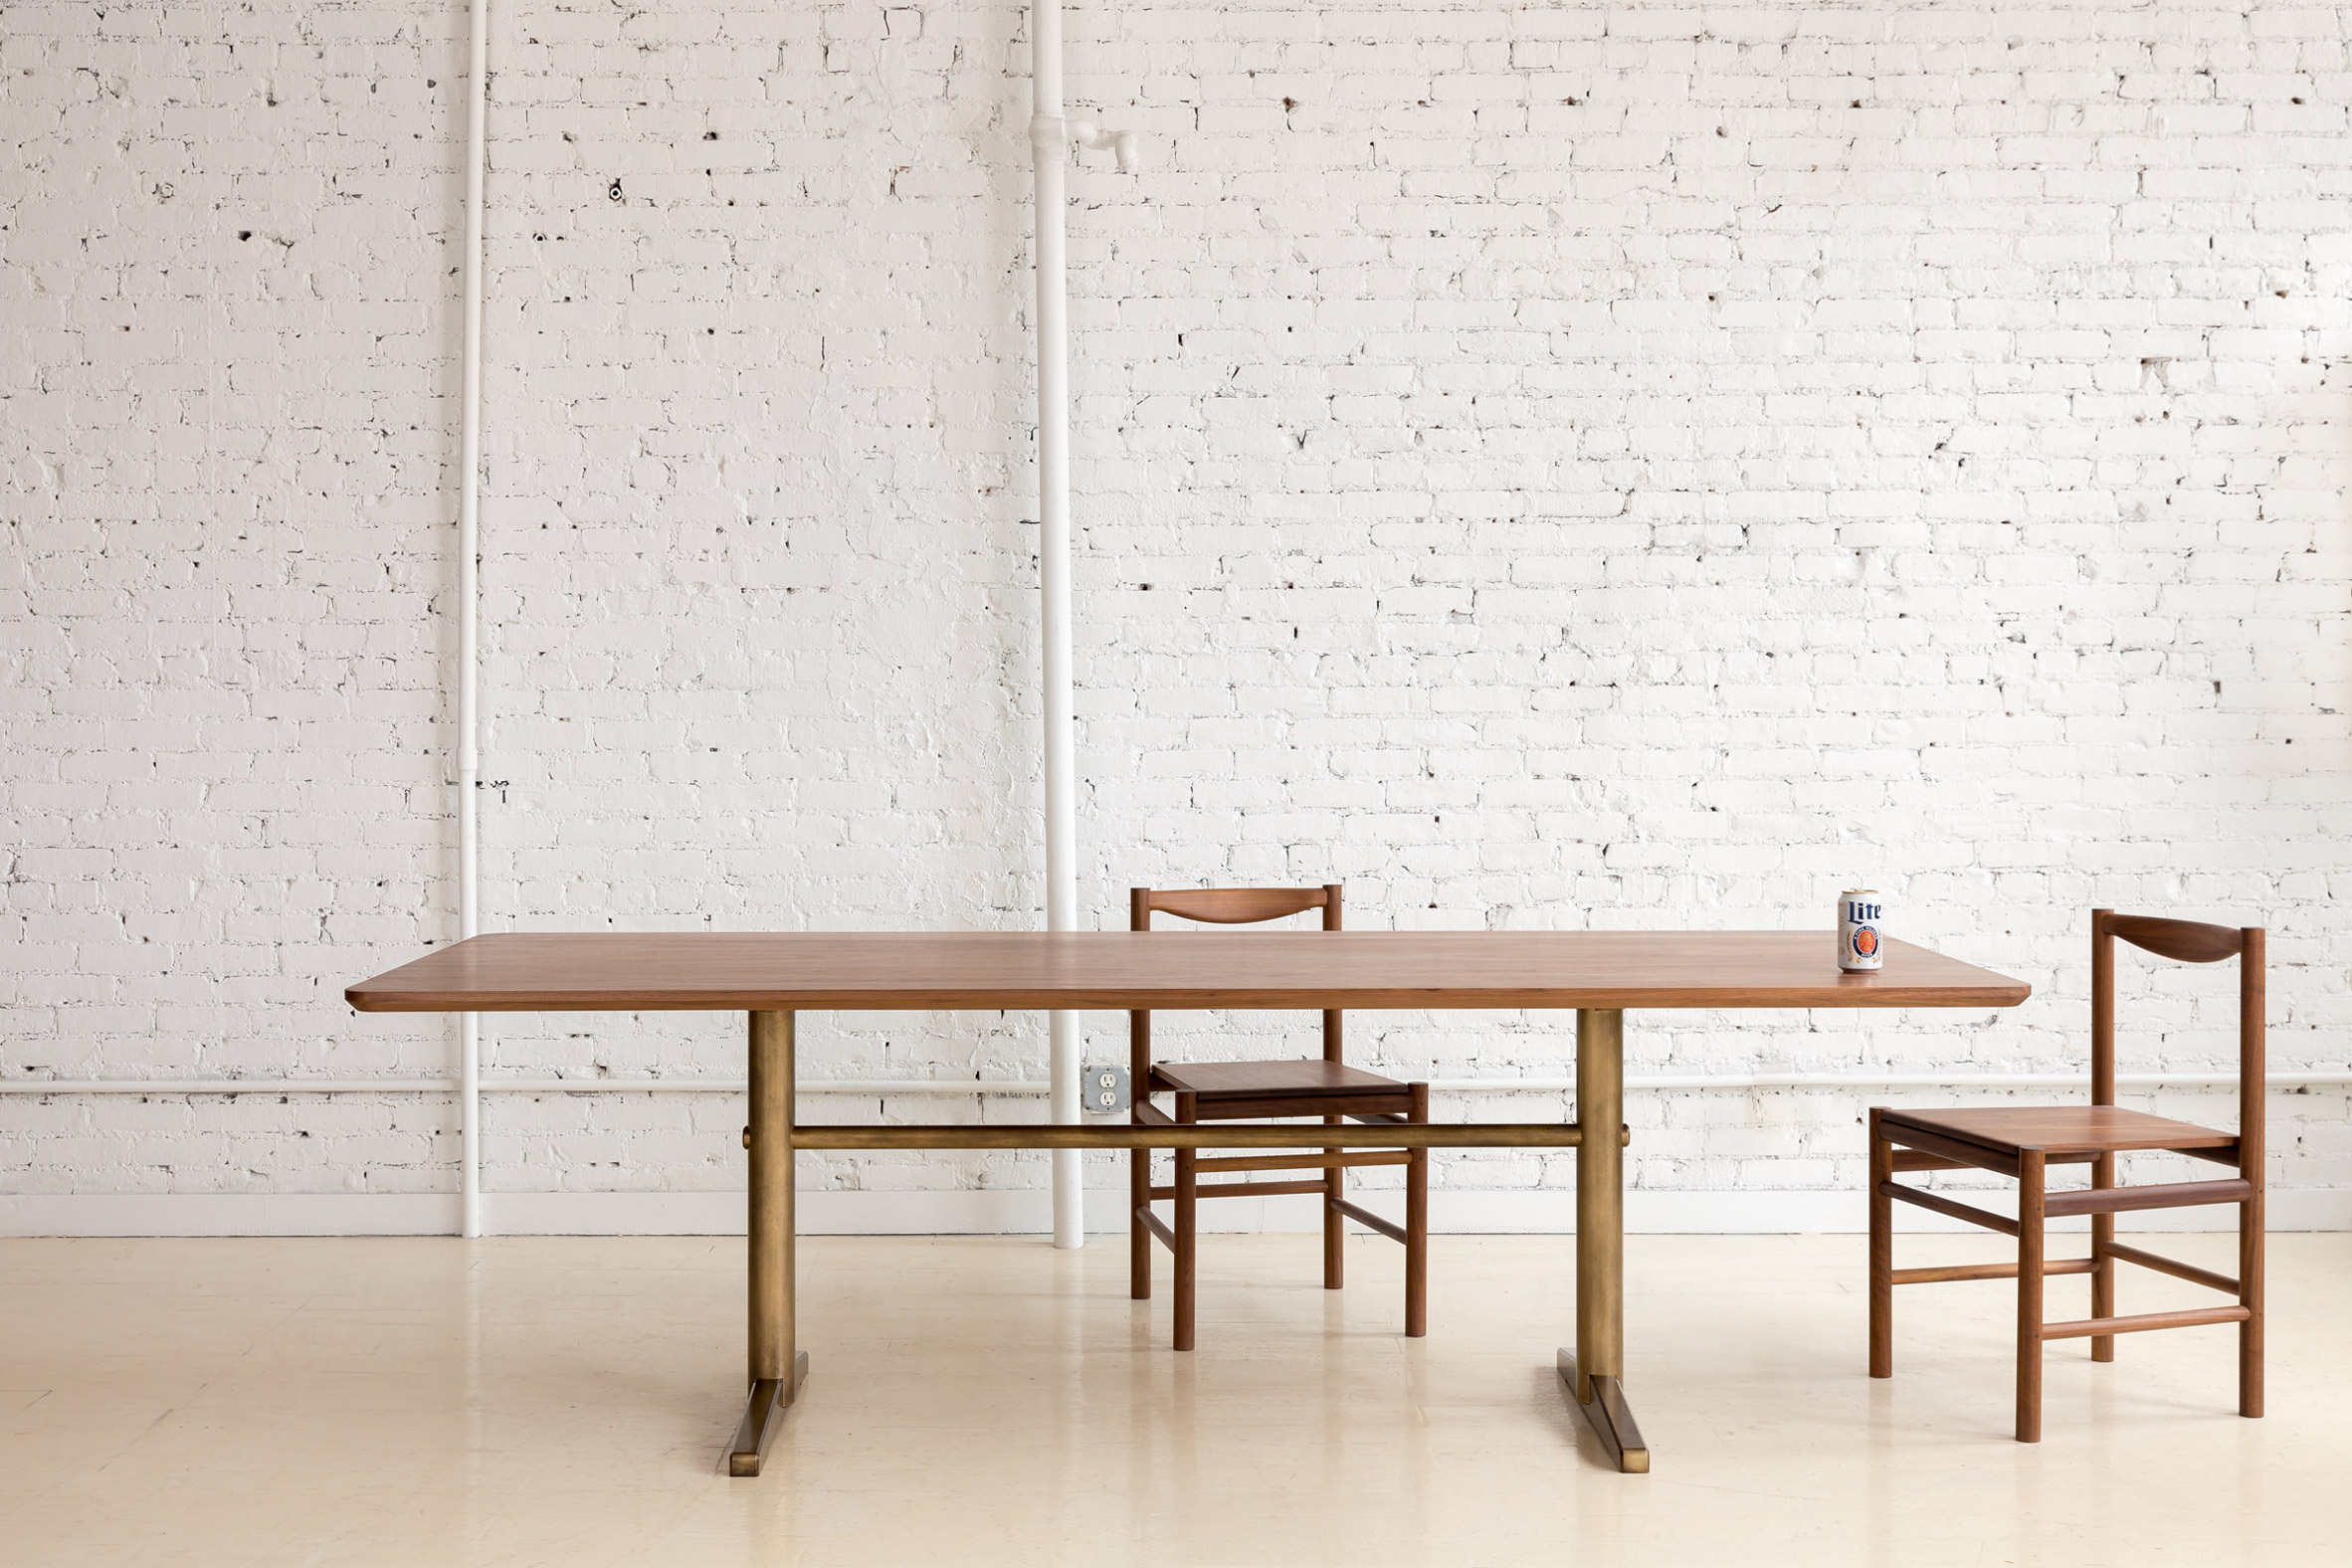 Fort Standard unveils range of minimal metal furniture